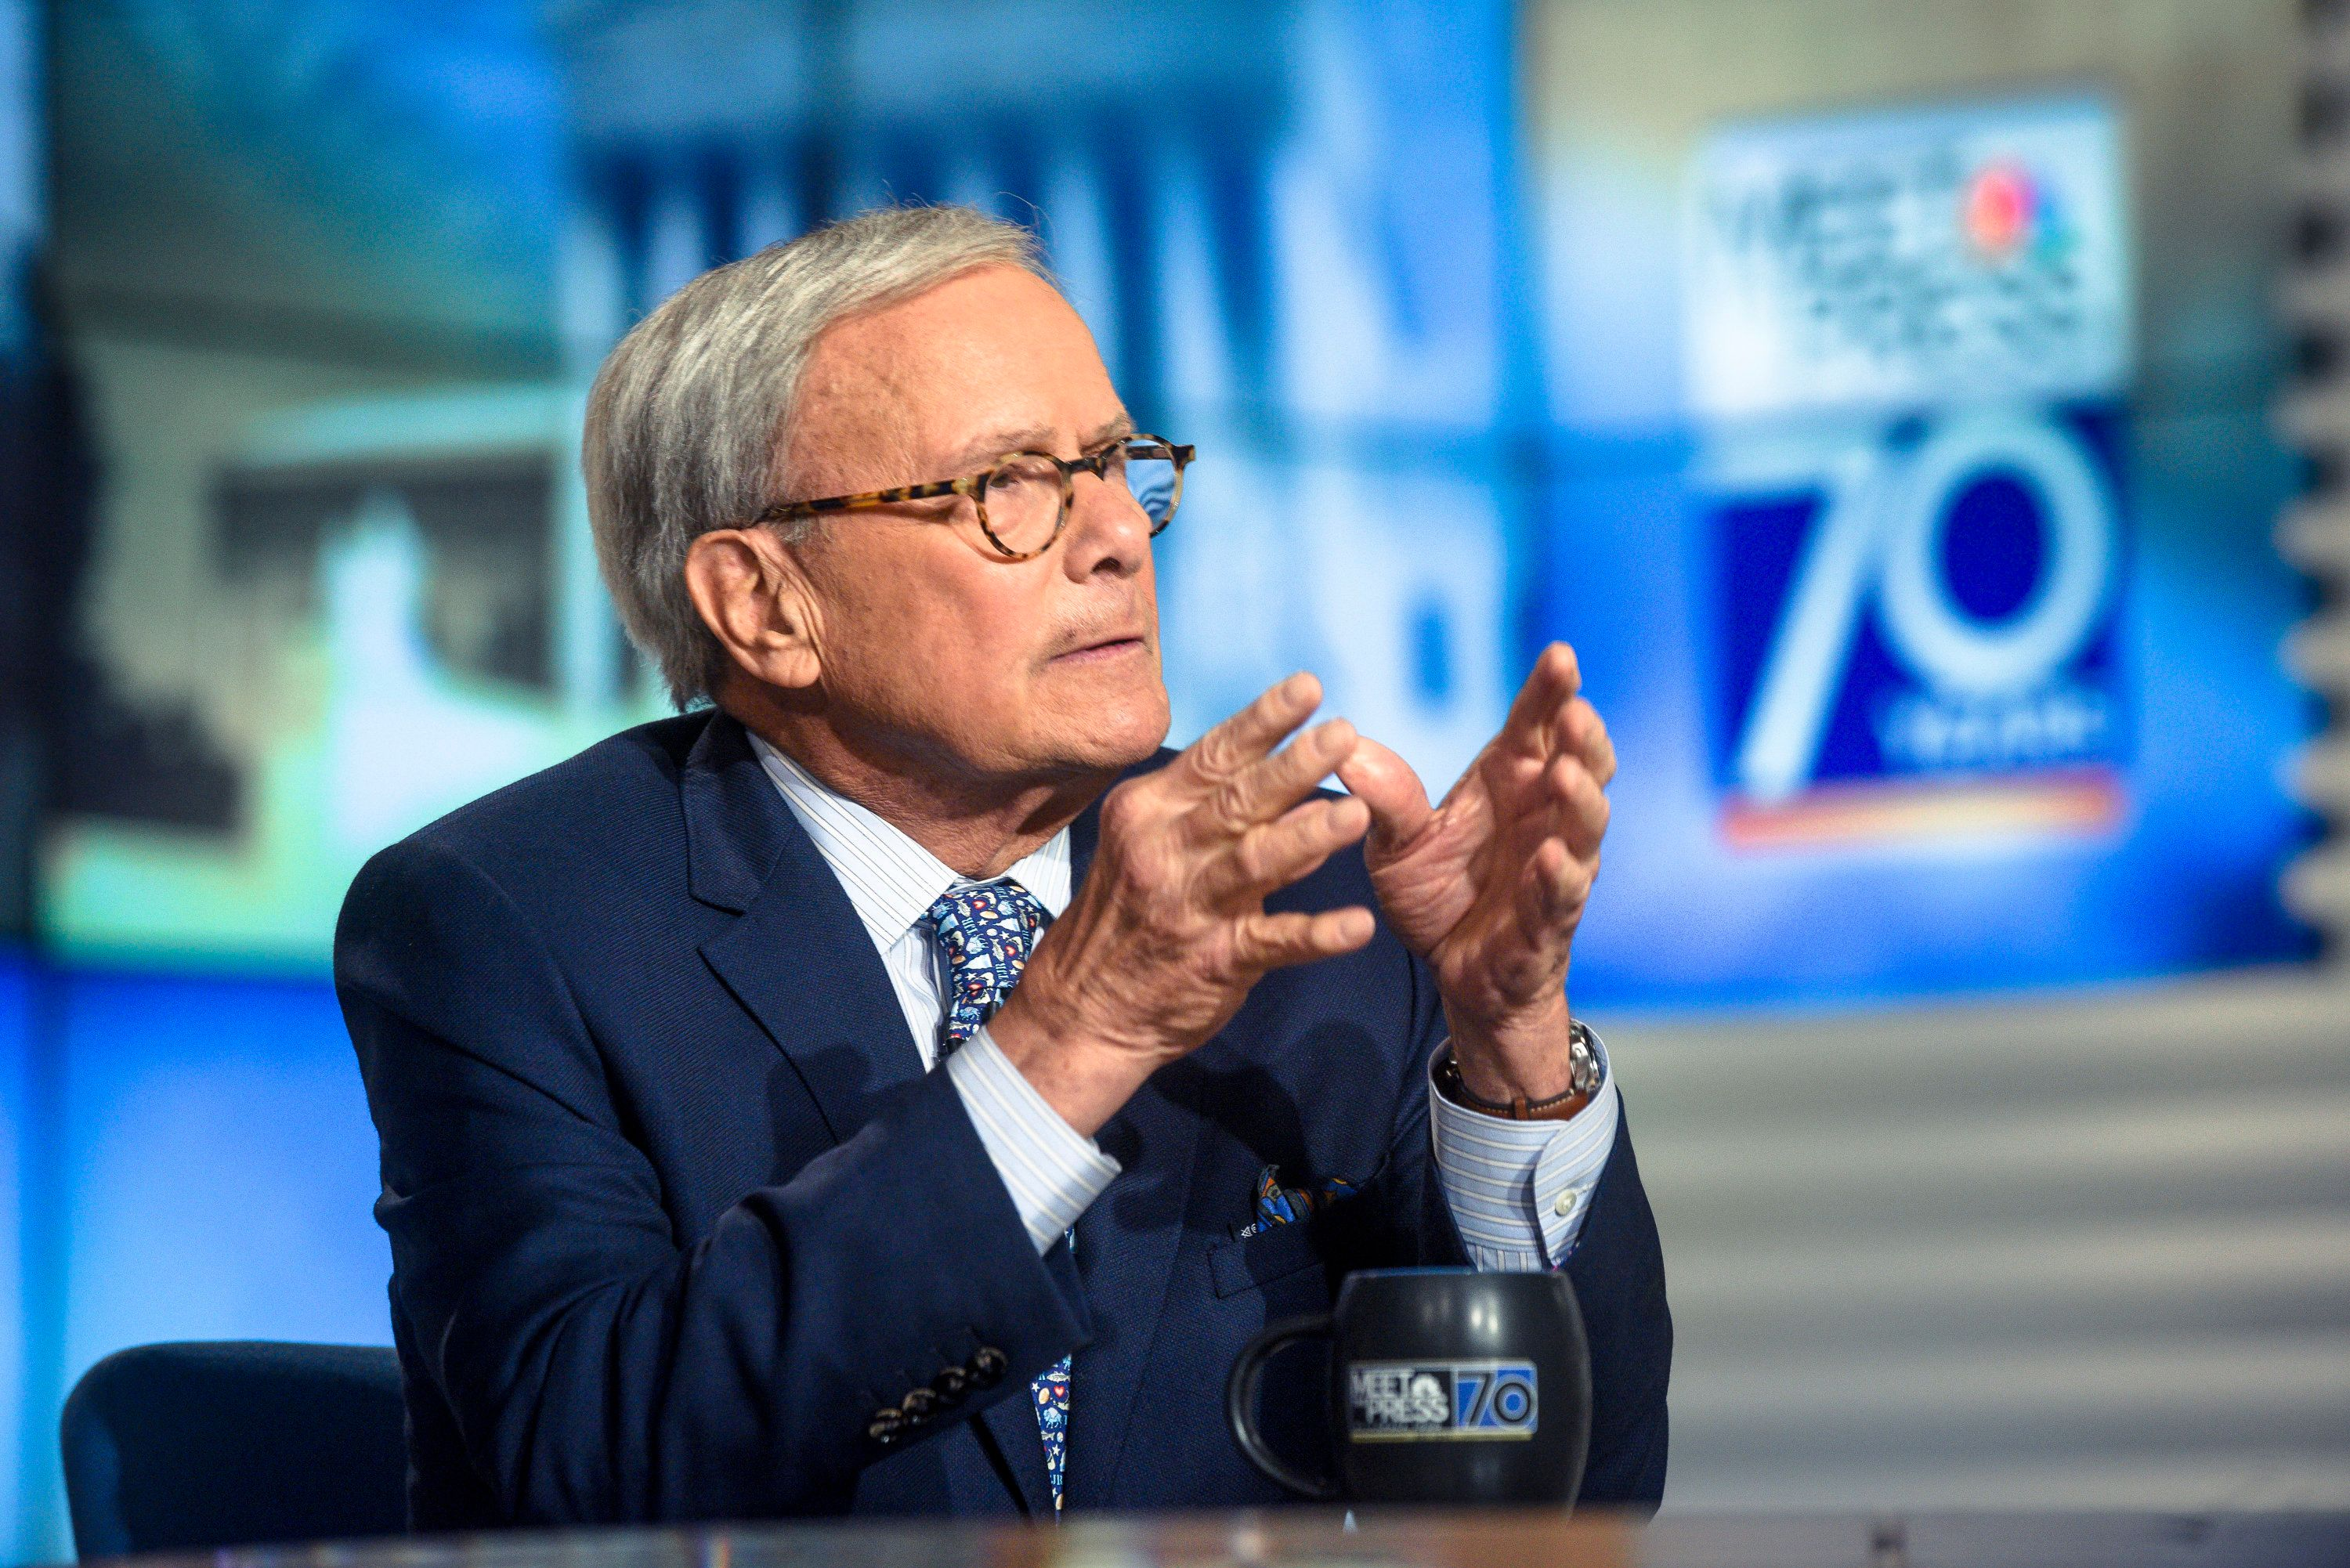 MEET THE PRESS -- Pictured: (l-r)   Tom Brokaw, NBC News Special Correspondent, appears on 'Meet the Press' in Washington, D.C., Sunday, Nov. 5, 2017.  (Photo by: William B. Plowman/NBC/NBC NewsWire via Getty Images)